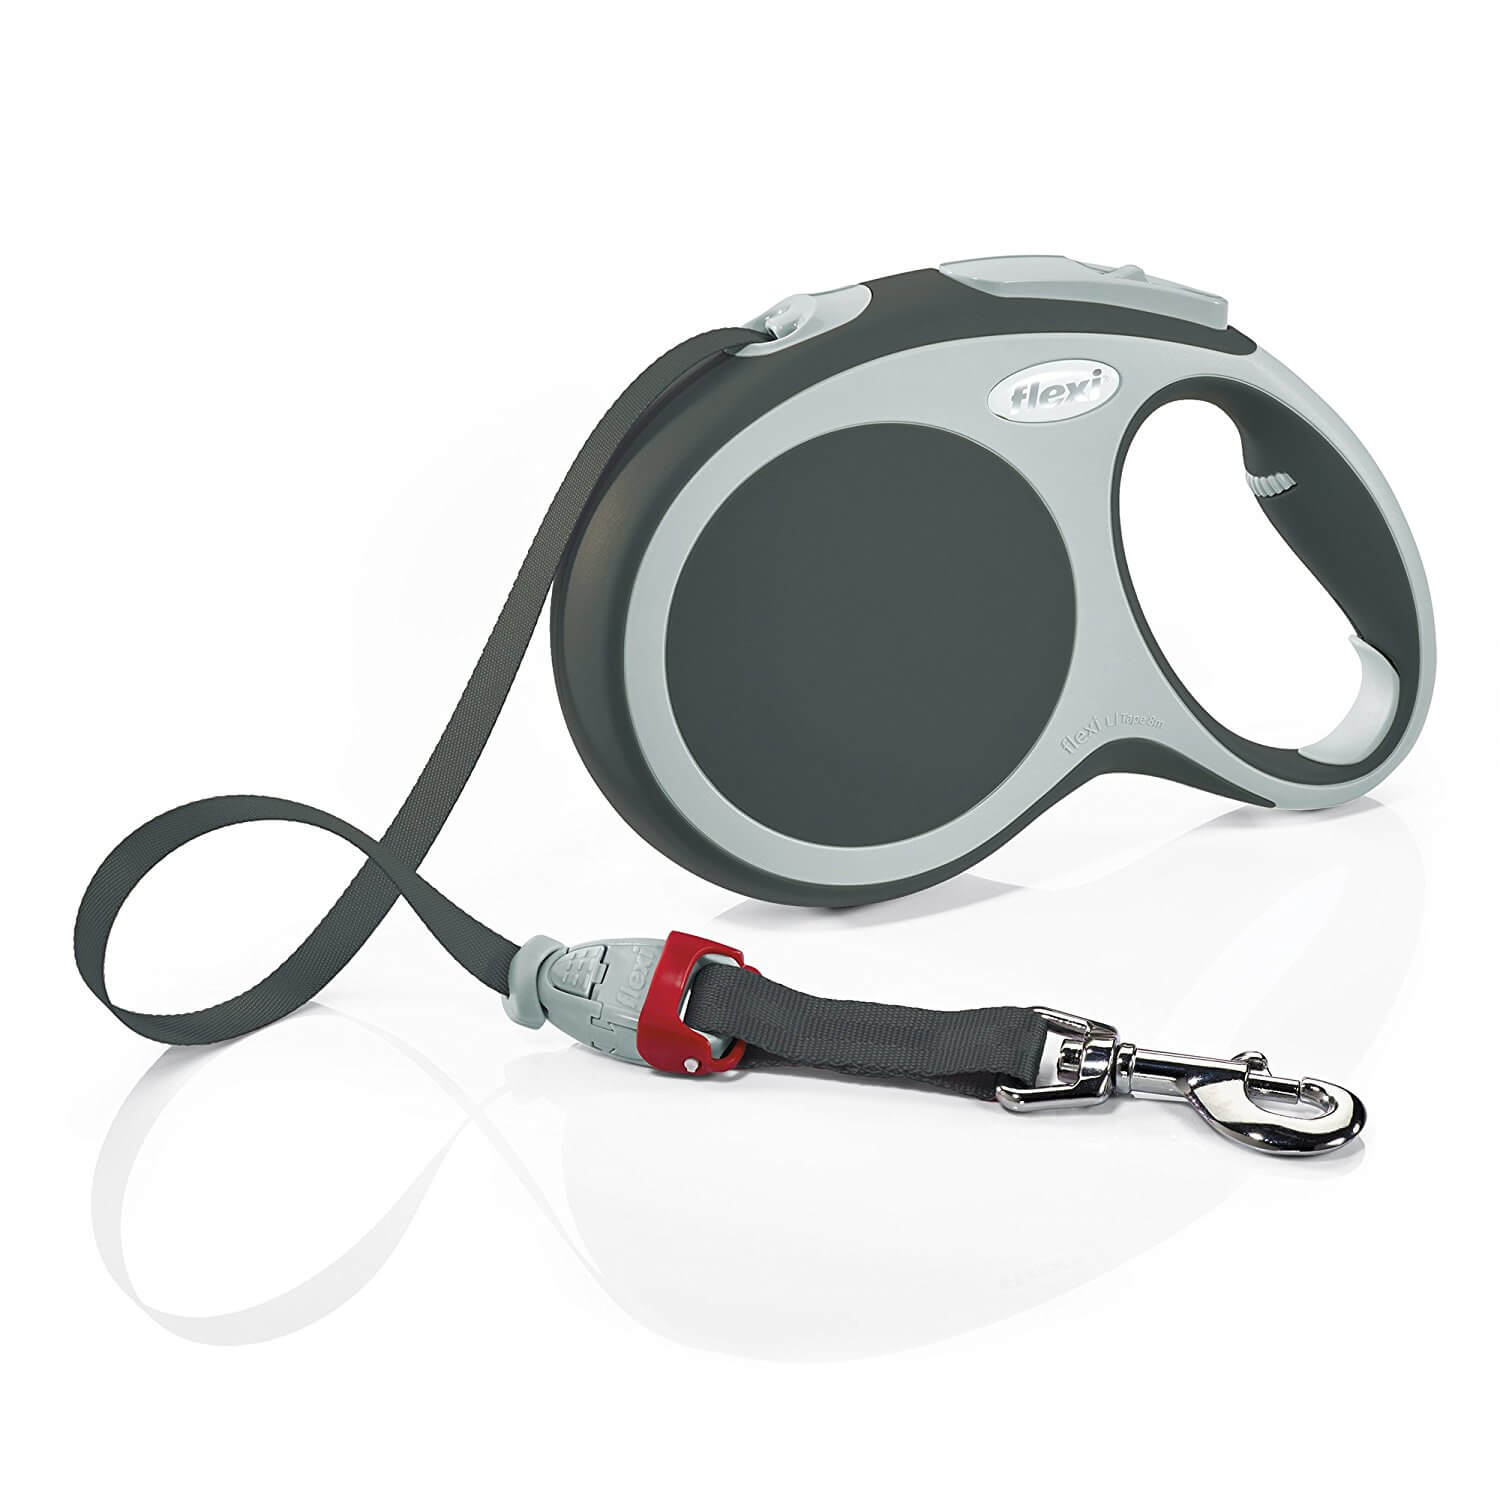 flexi retractable lead